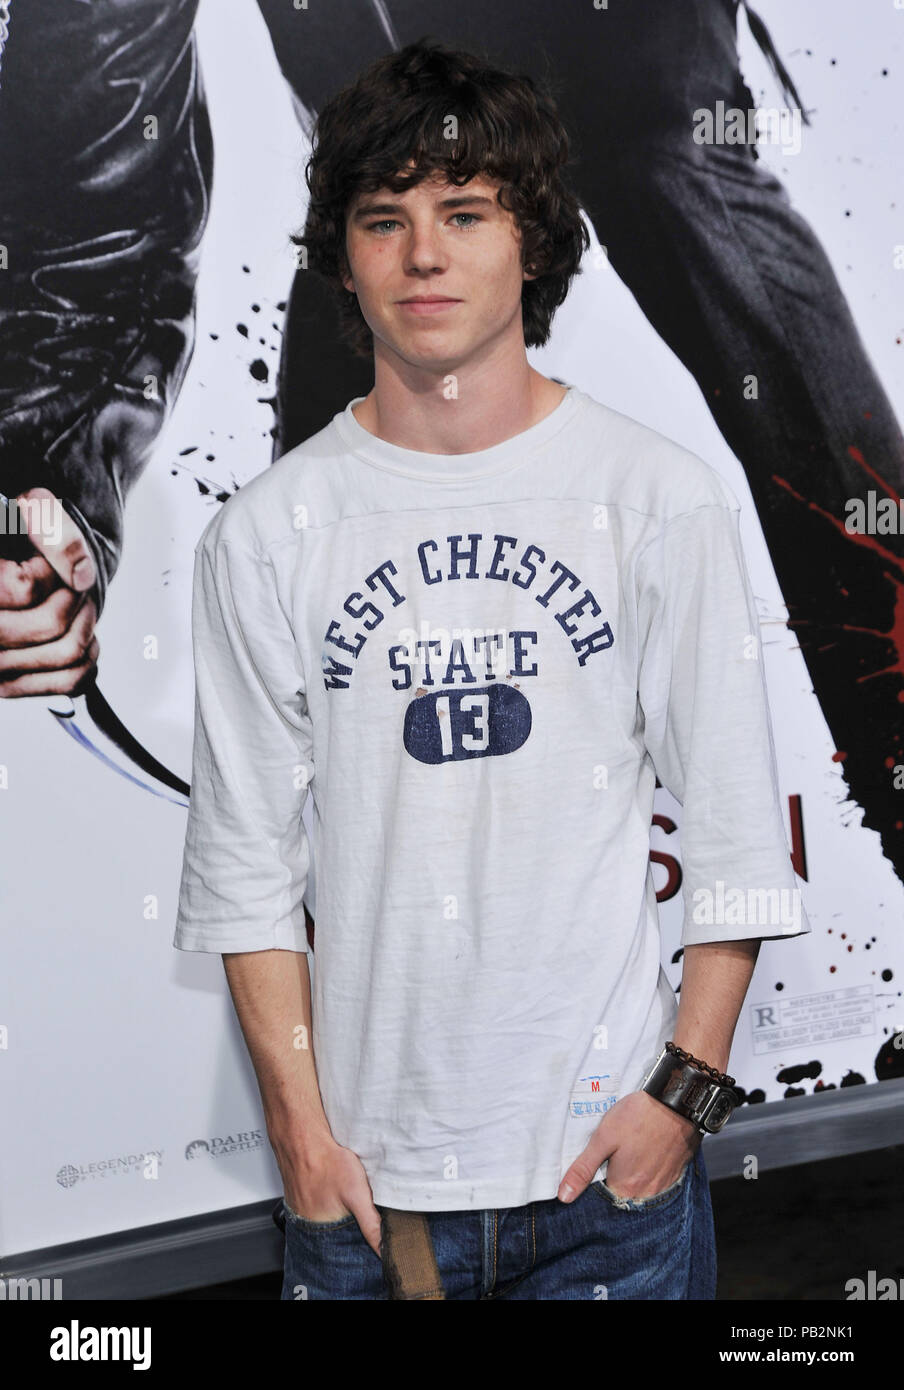 Charlie McDermott   - NINJA ASSASSIN Premiere at GraumanÕs Chinese Theatre In Los Angeles.Charlie McDermott_35 Red Carpet Event, Vertical, USA, Film Industry, Celebrities,  Photography, Bestof, Arts Culture and Entertainment, Topix Celebrities fashion /  Vertical, Best of, Event in Hollywood Life - California,  Red Carpet and backstage, USA, Film Industry, Celebrities,  movie celebrities, TV celebrities, Music celebrities, Photography, Bestof, Arts Culture and Entertainment,  Topix, vertical, one person,, from the years , 2006 to 2009, inquiry tsuni@Gamma-USA.com - Three Quarters - Stock Image